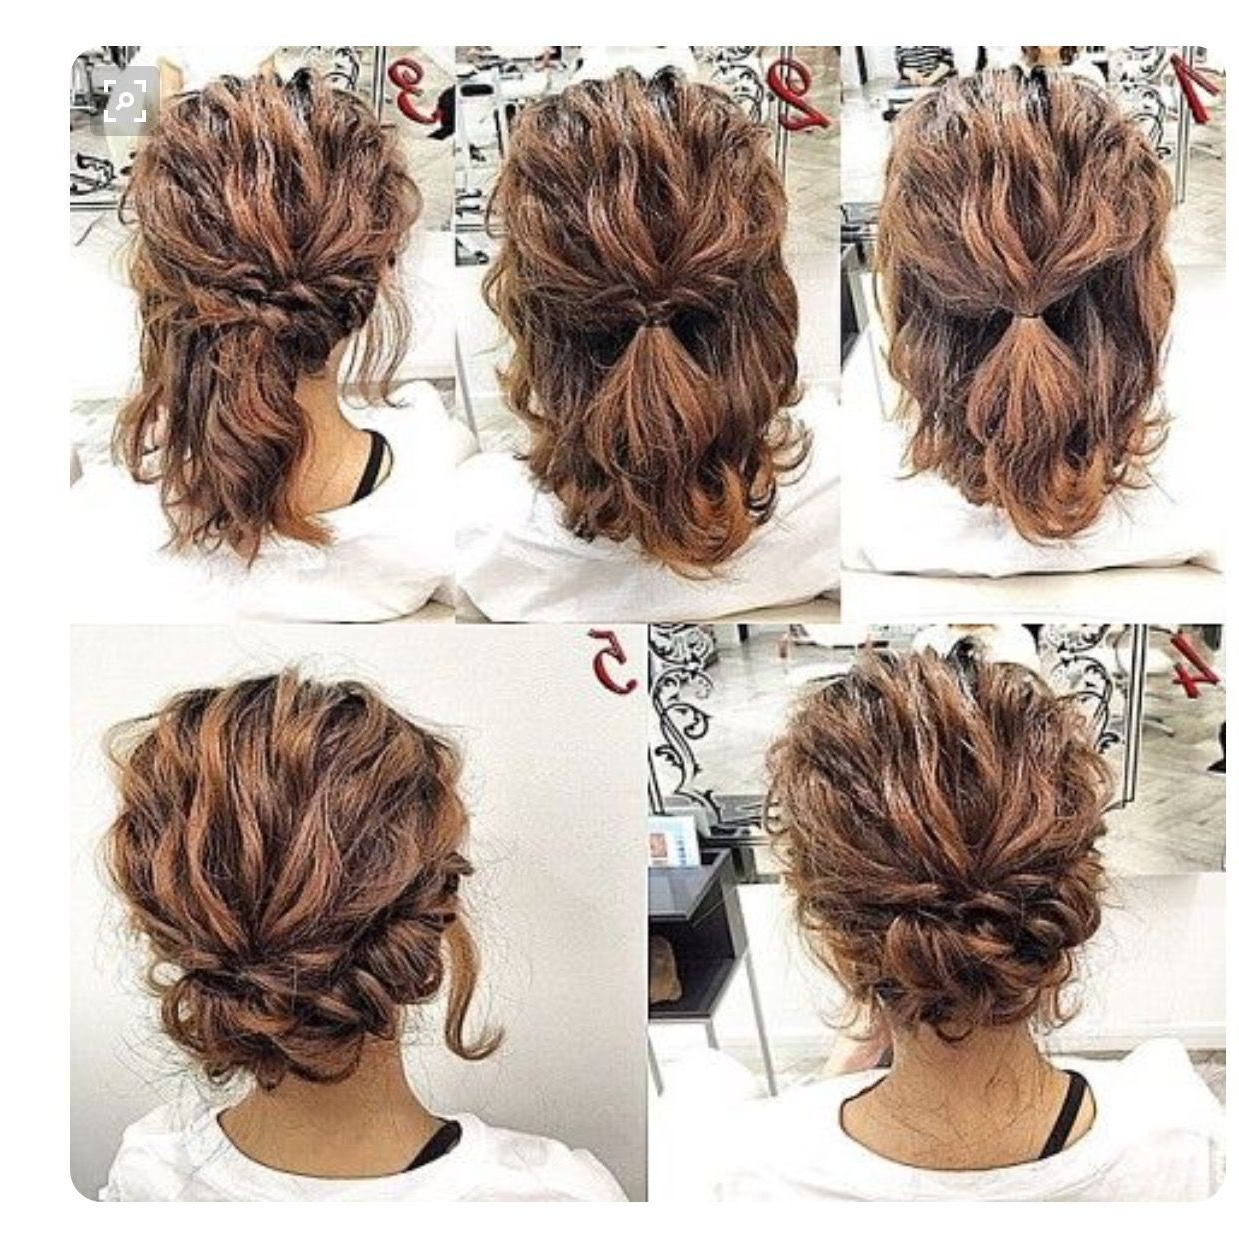 Short Hair Updo With Most Recent Curled Updo Hairstyles (View 10 of 20)